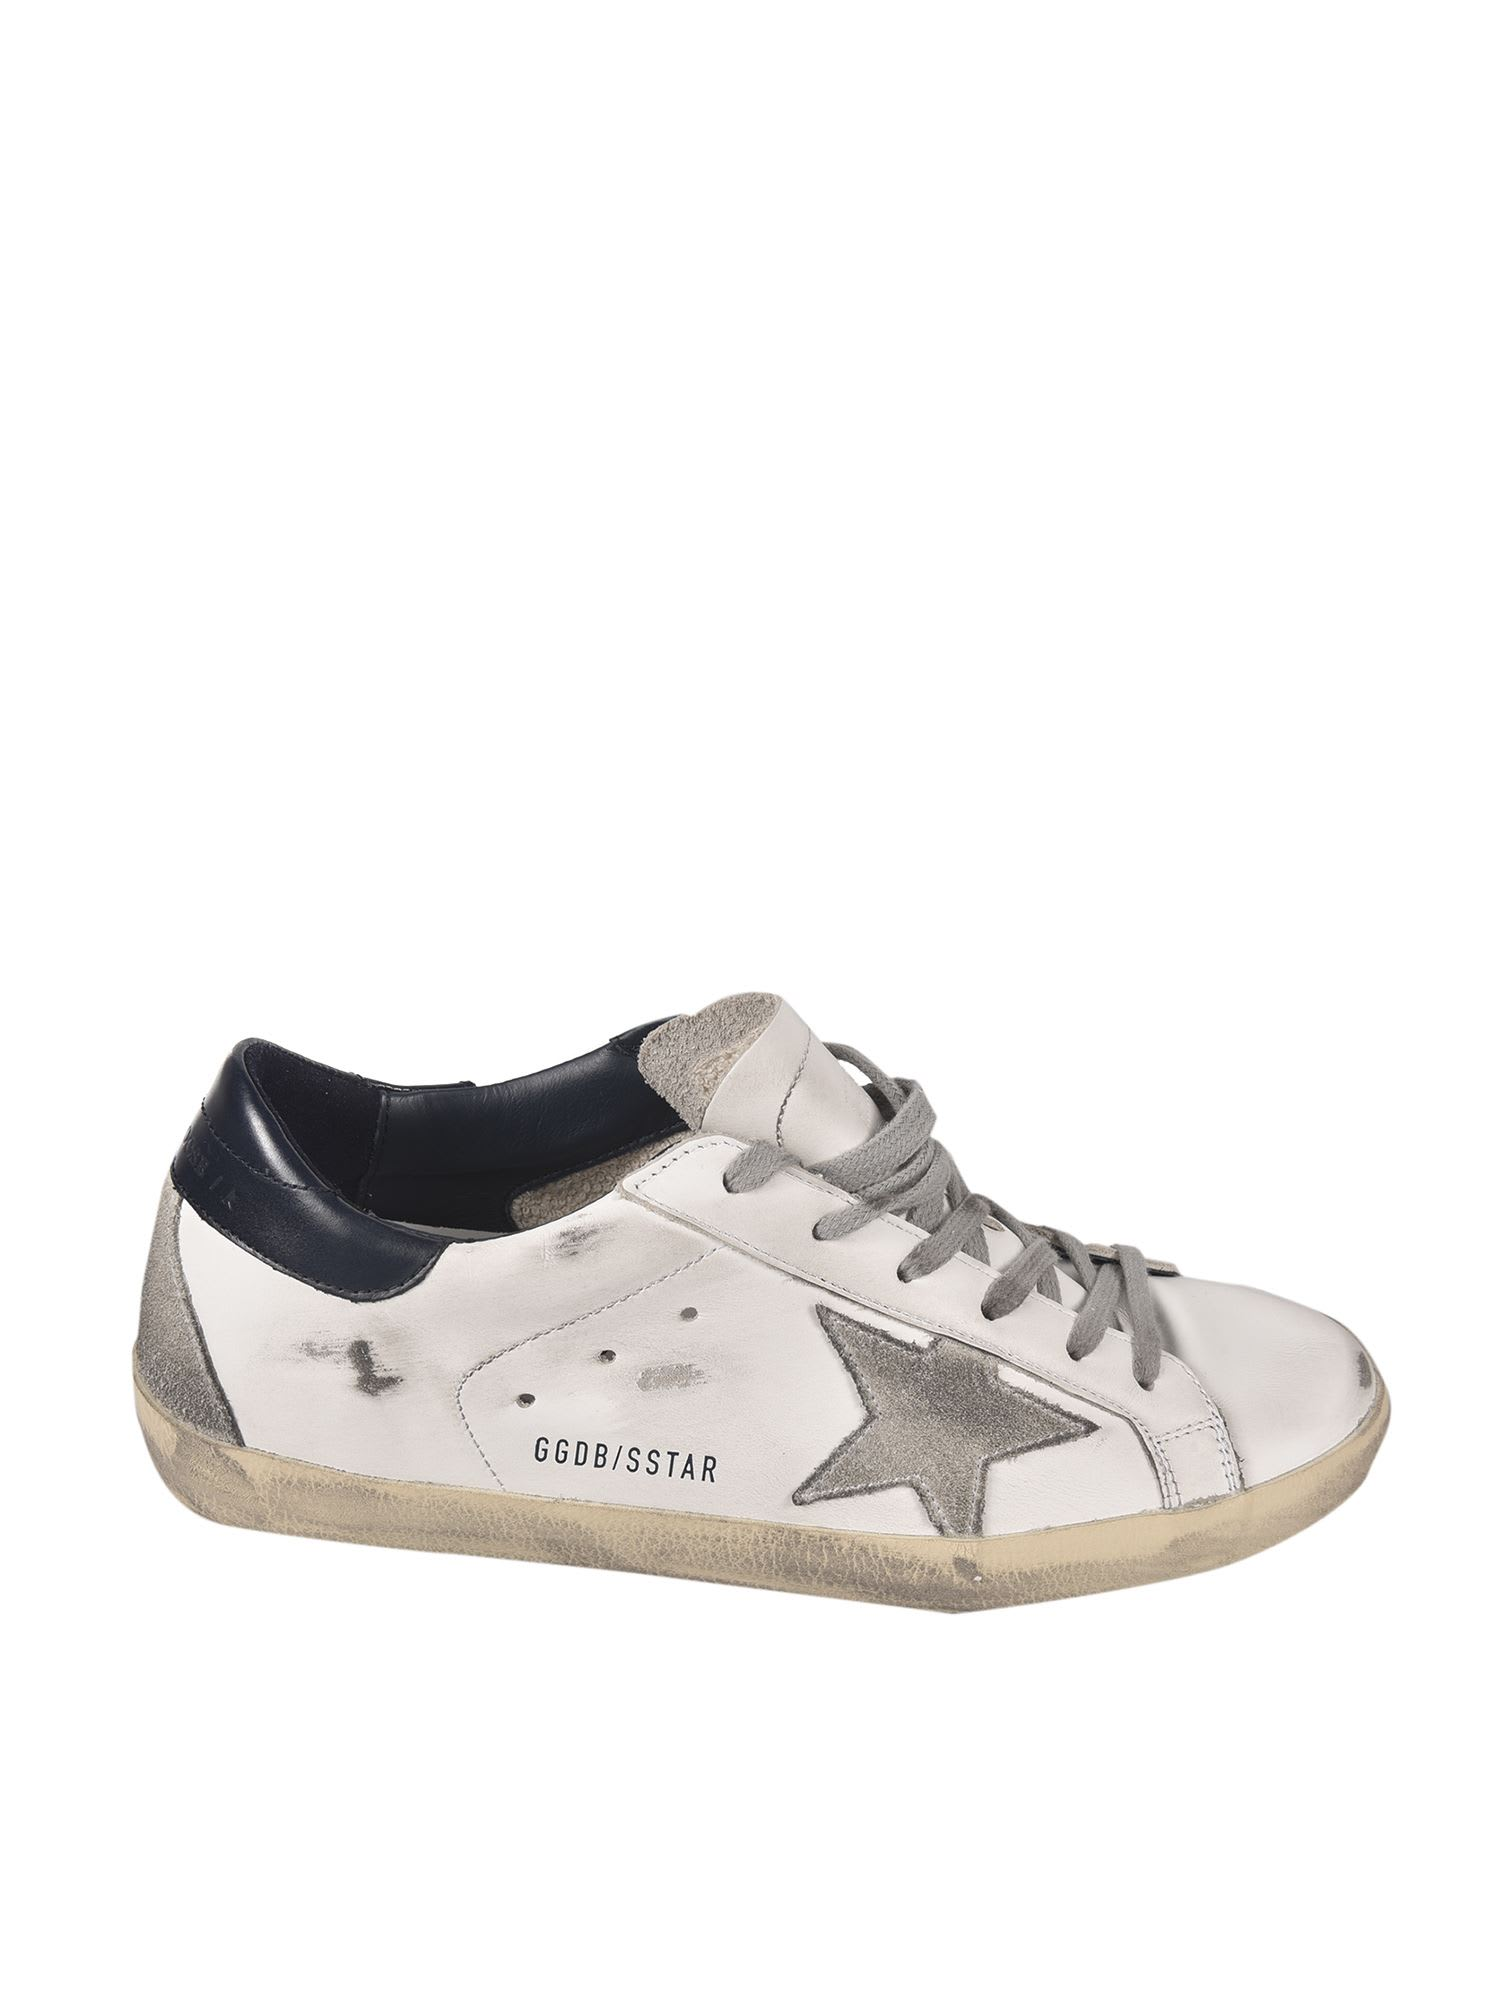 Buy Golden Goose Super Star Sneaker online, shop Golden Goose shoes with free shipping